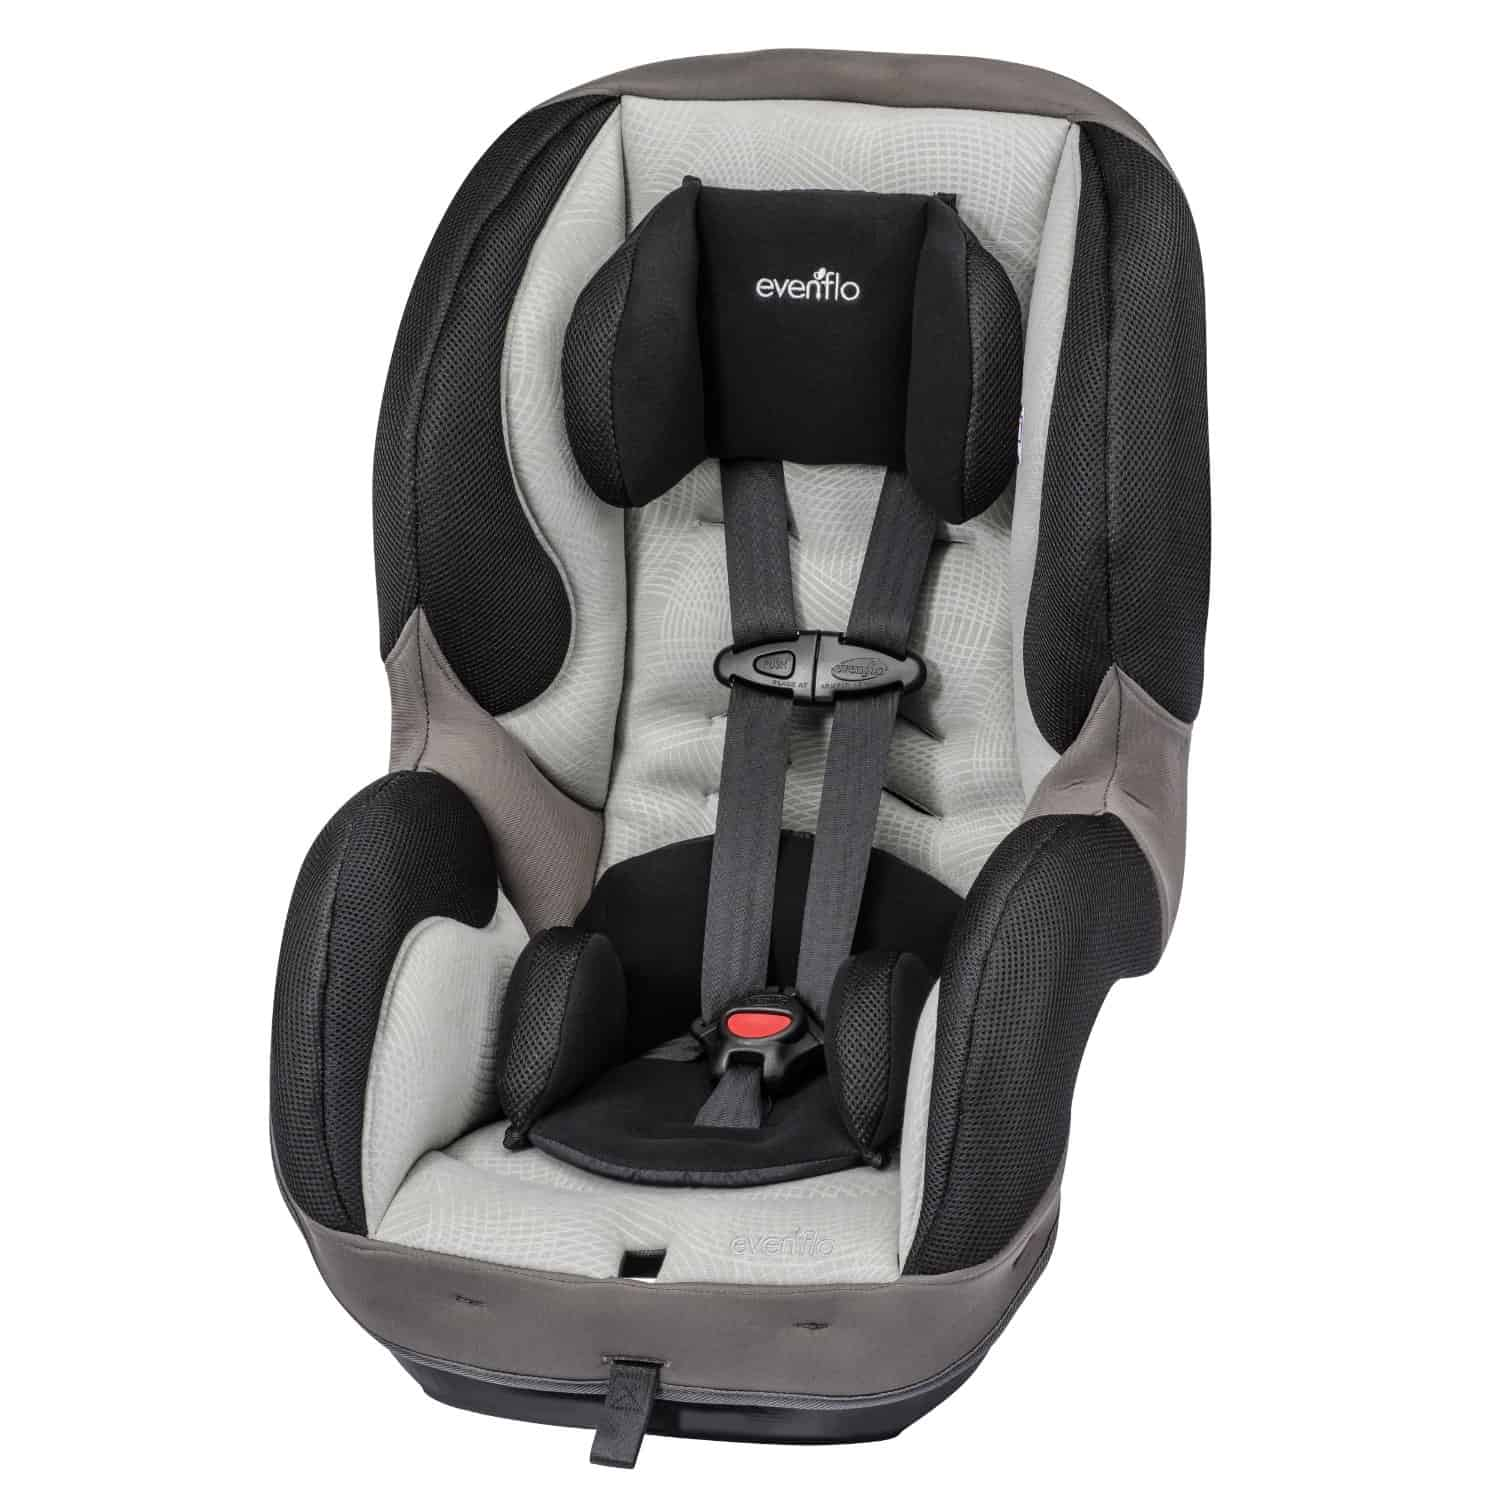 Convertible Car Seat Review: Evenflo SureRide